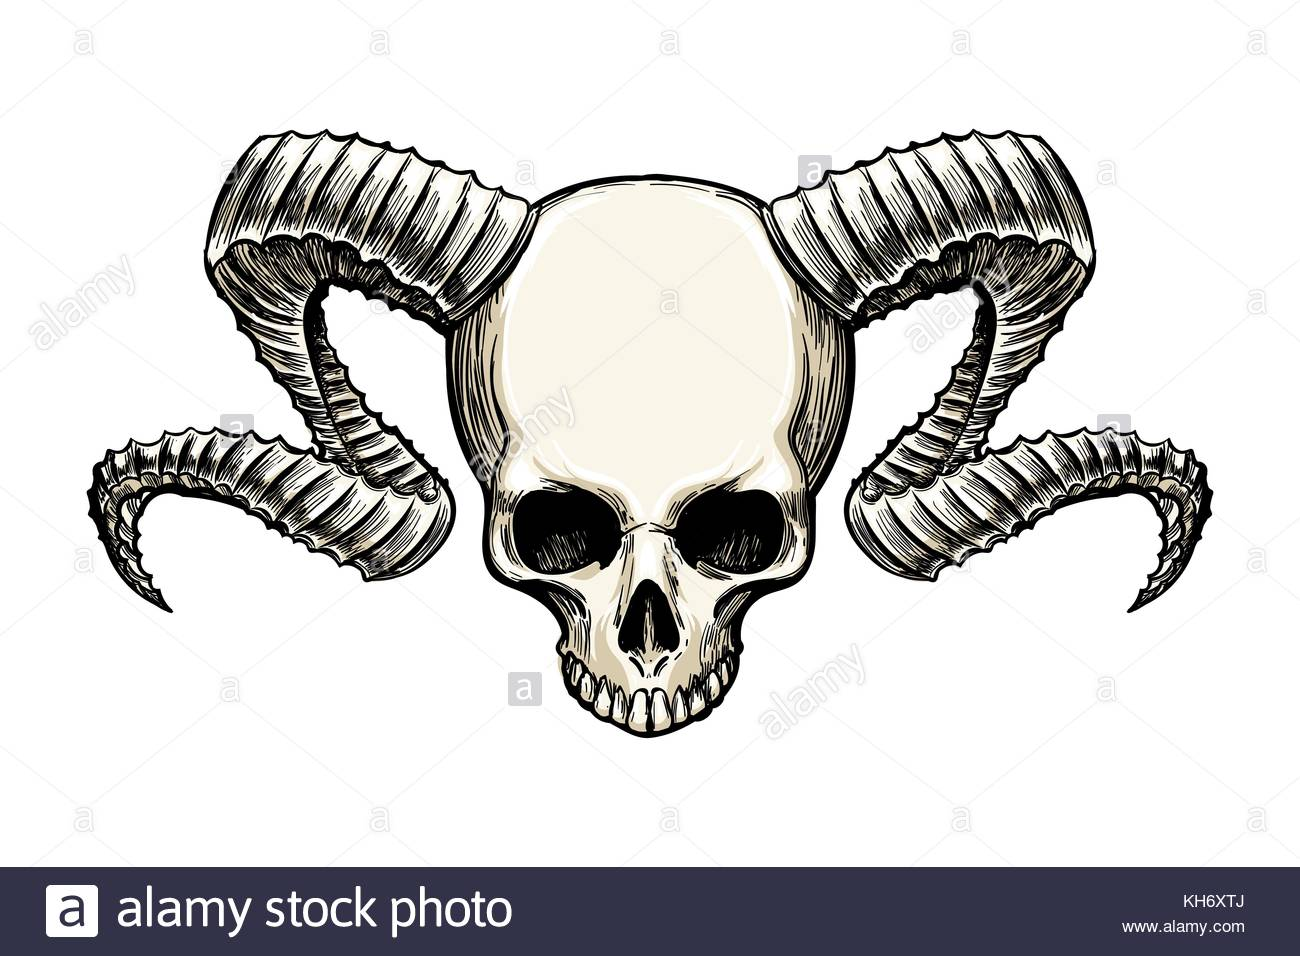 1300x956 Human Skull With Ram Horns Drawn In Sketh Tattoo Style Isolated